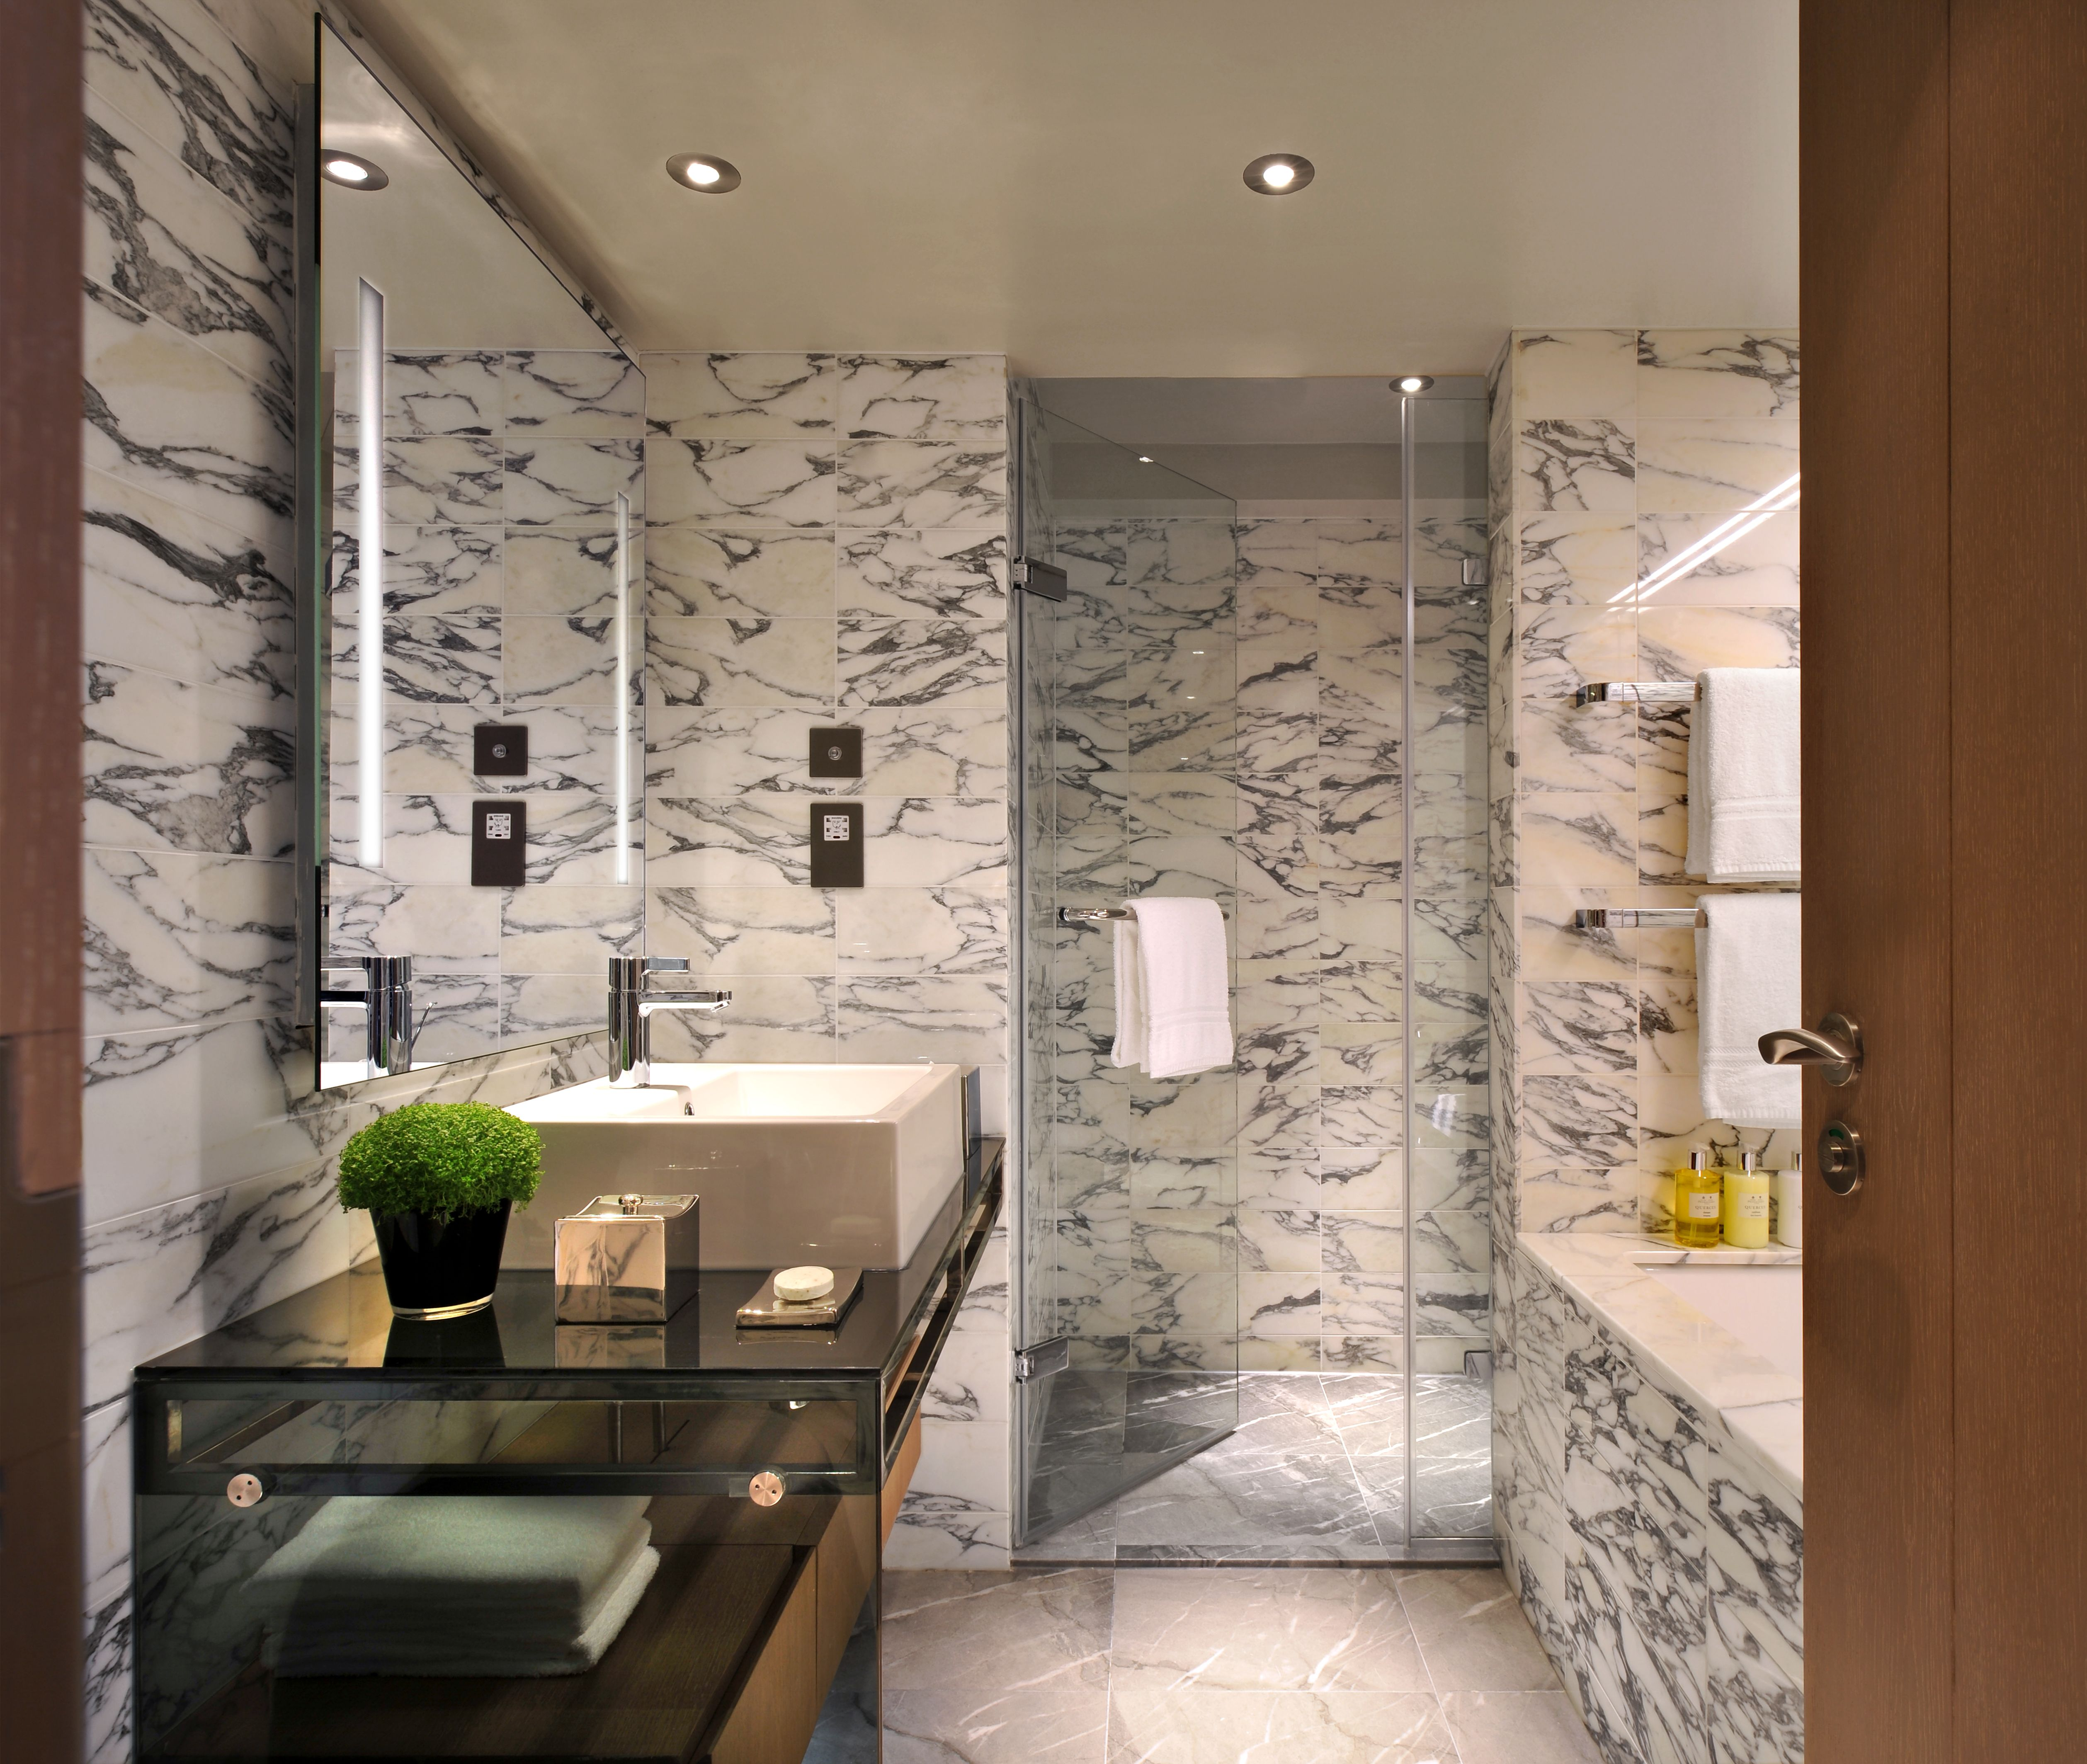 A Modern Arabeo Marble Bathroom With Walk In Rainforest Shower The Hari Suite